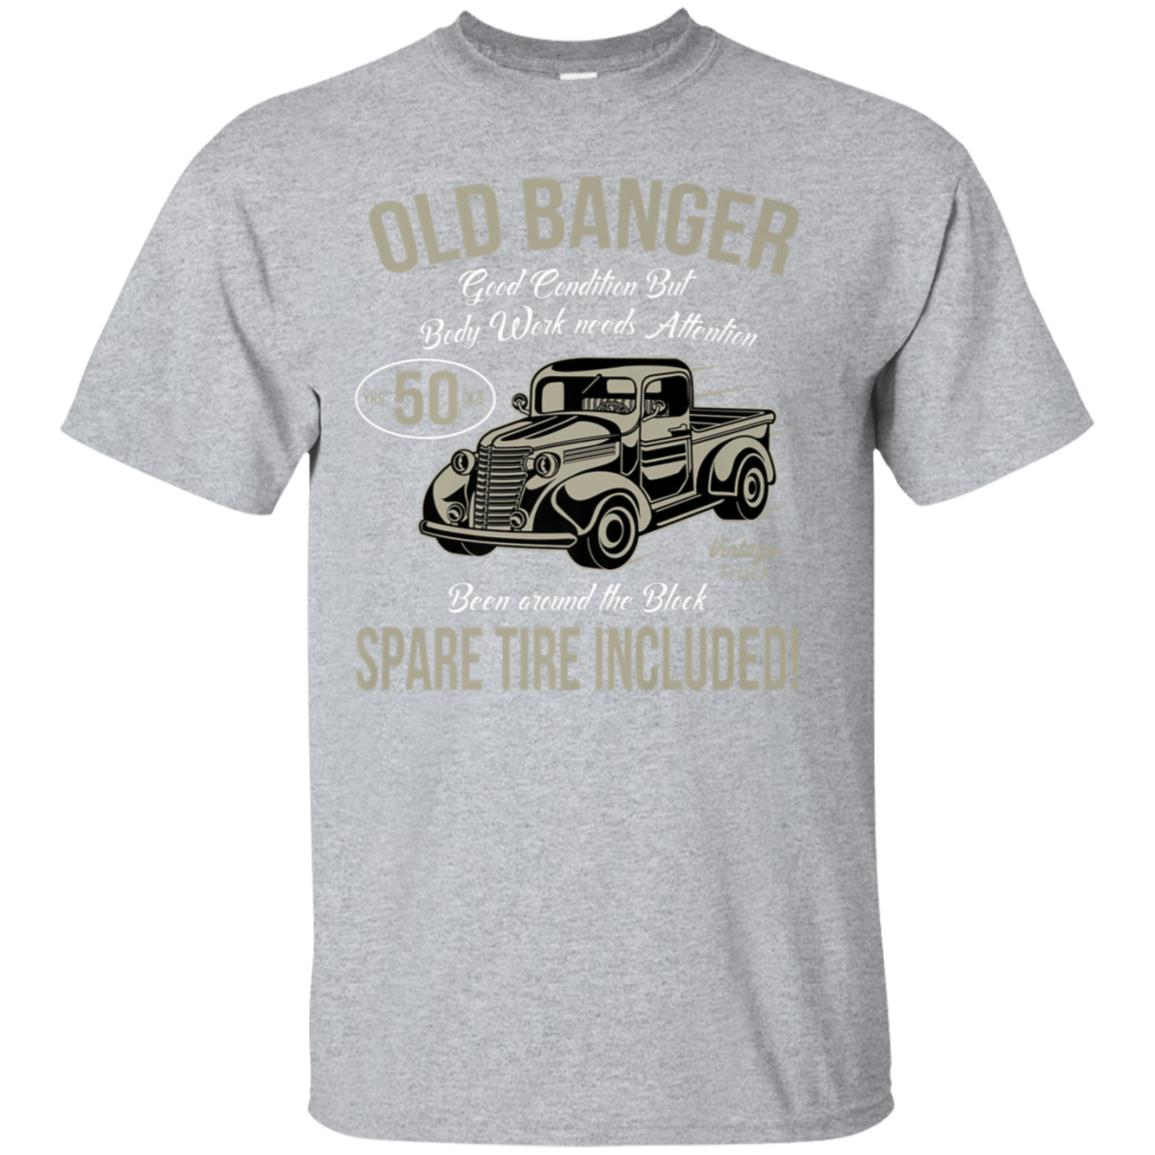 50th Birthday T-Shirt Vintage Old Banger 50 years old Gift 99promocode